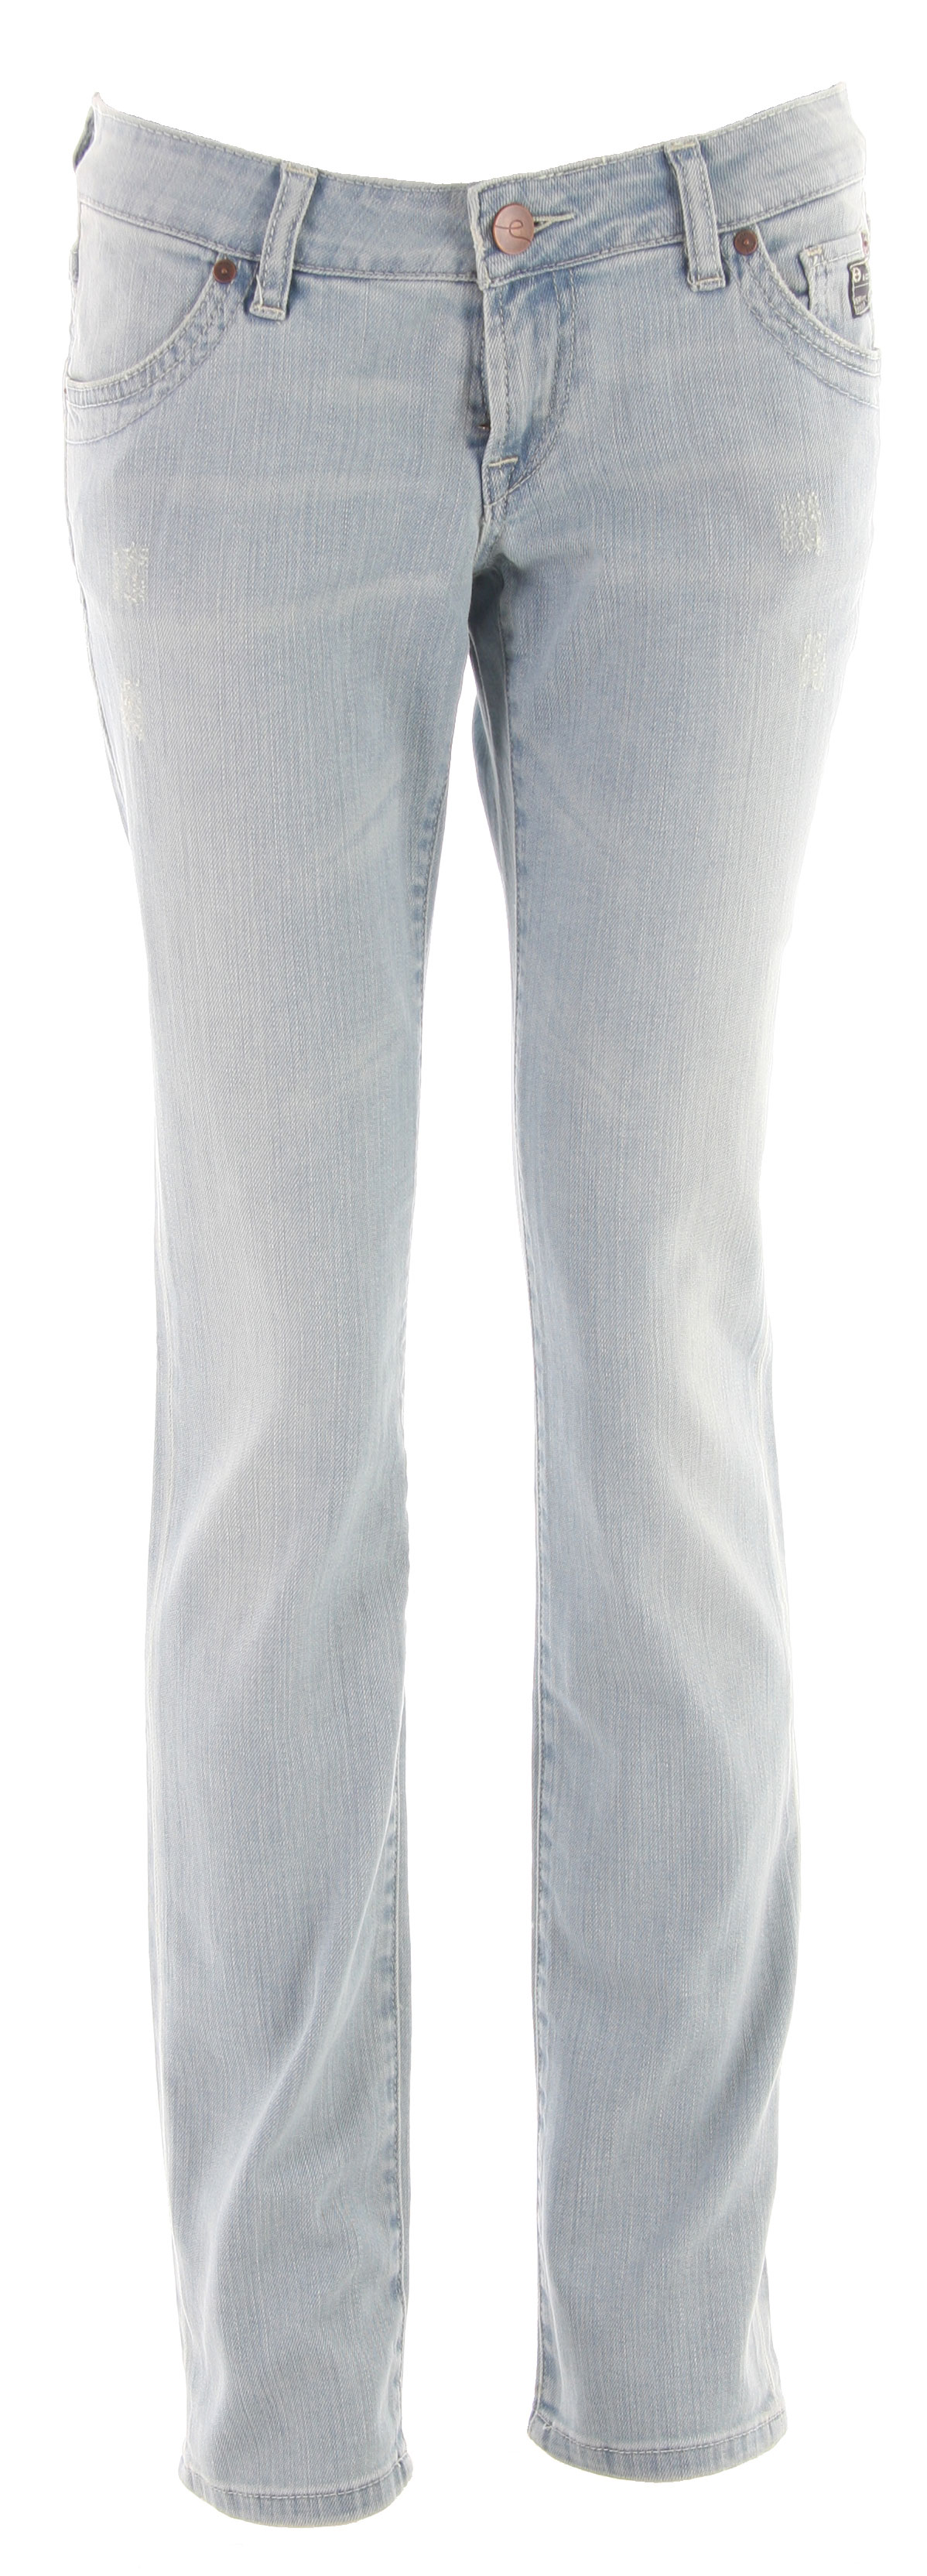 Planet Earth Skinny Cut Stone Wash Jean Light Indigo - $23.95